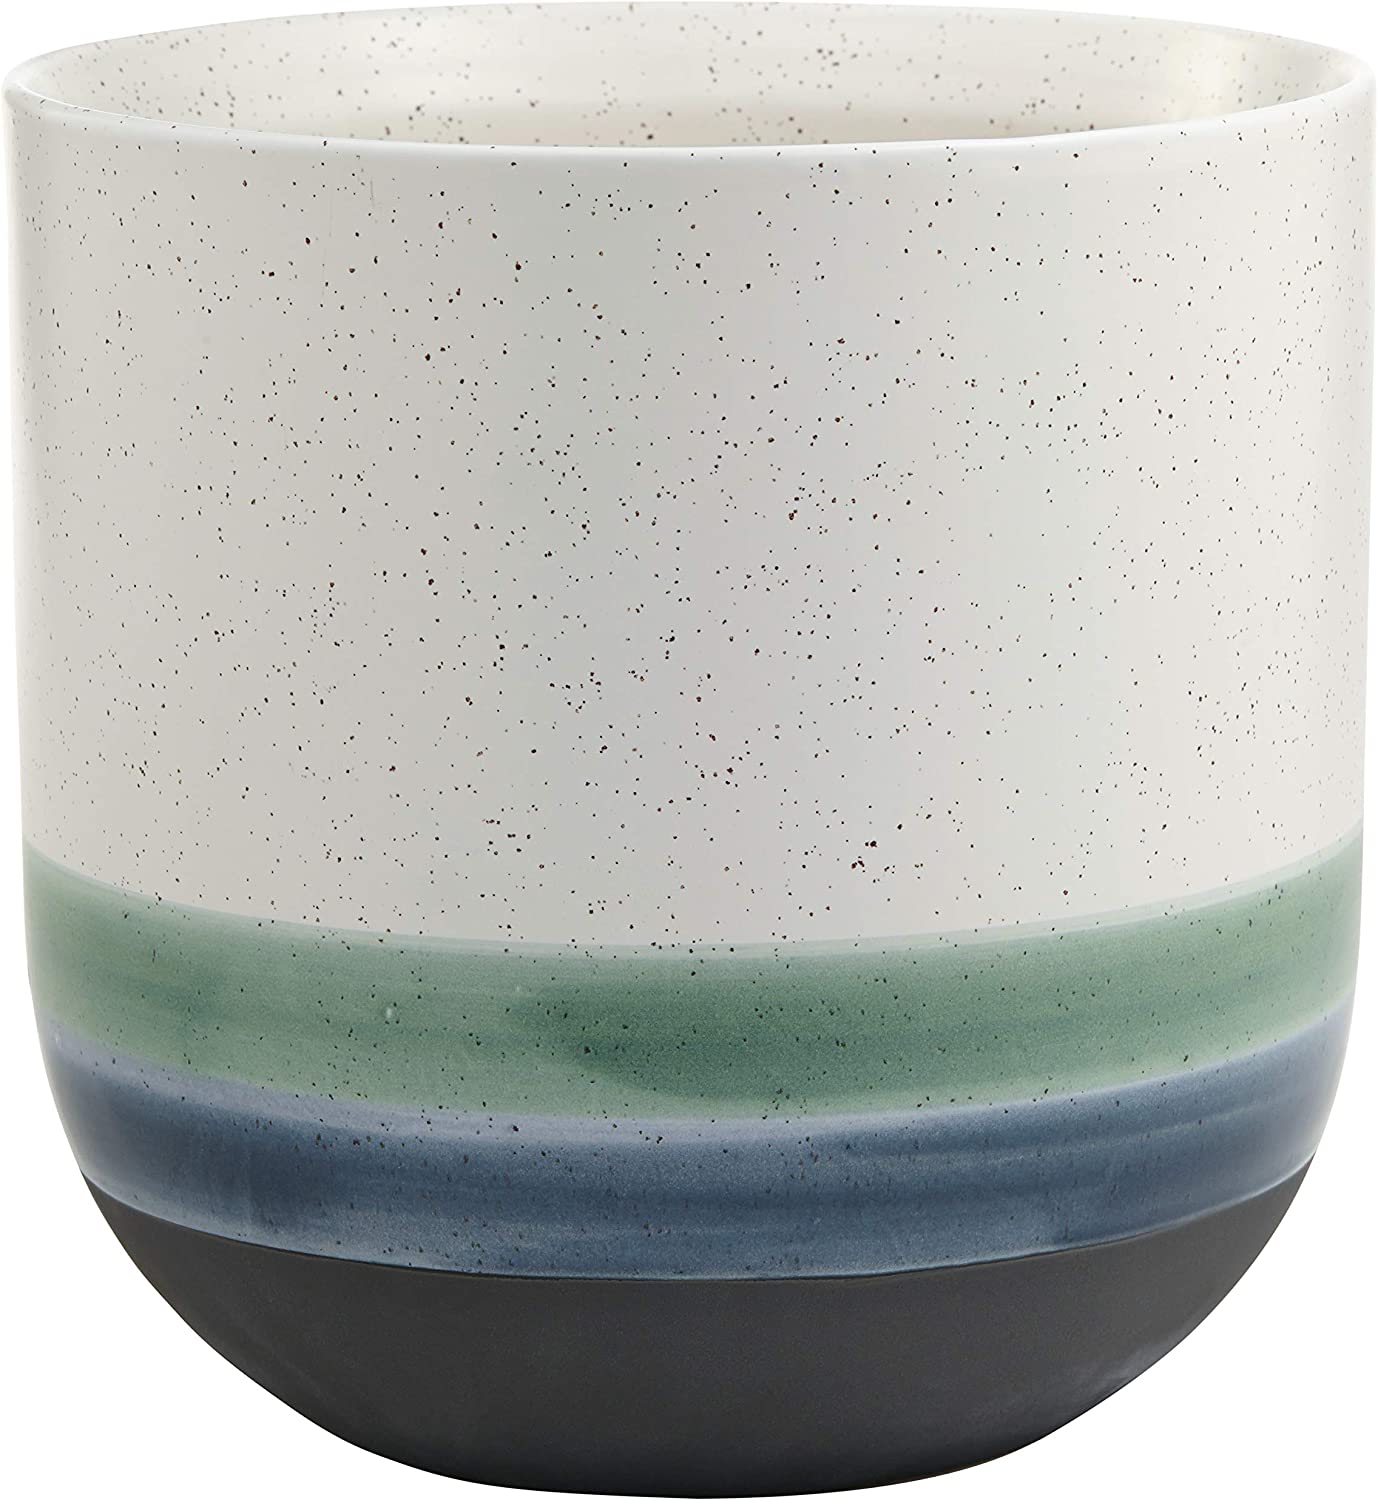 Rivet Westline Modern Indoor Outdoor Hand-Painted Stoneware Planter Flower Pot, 10 H, Teal White Blue Black